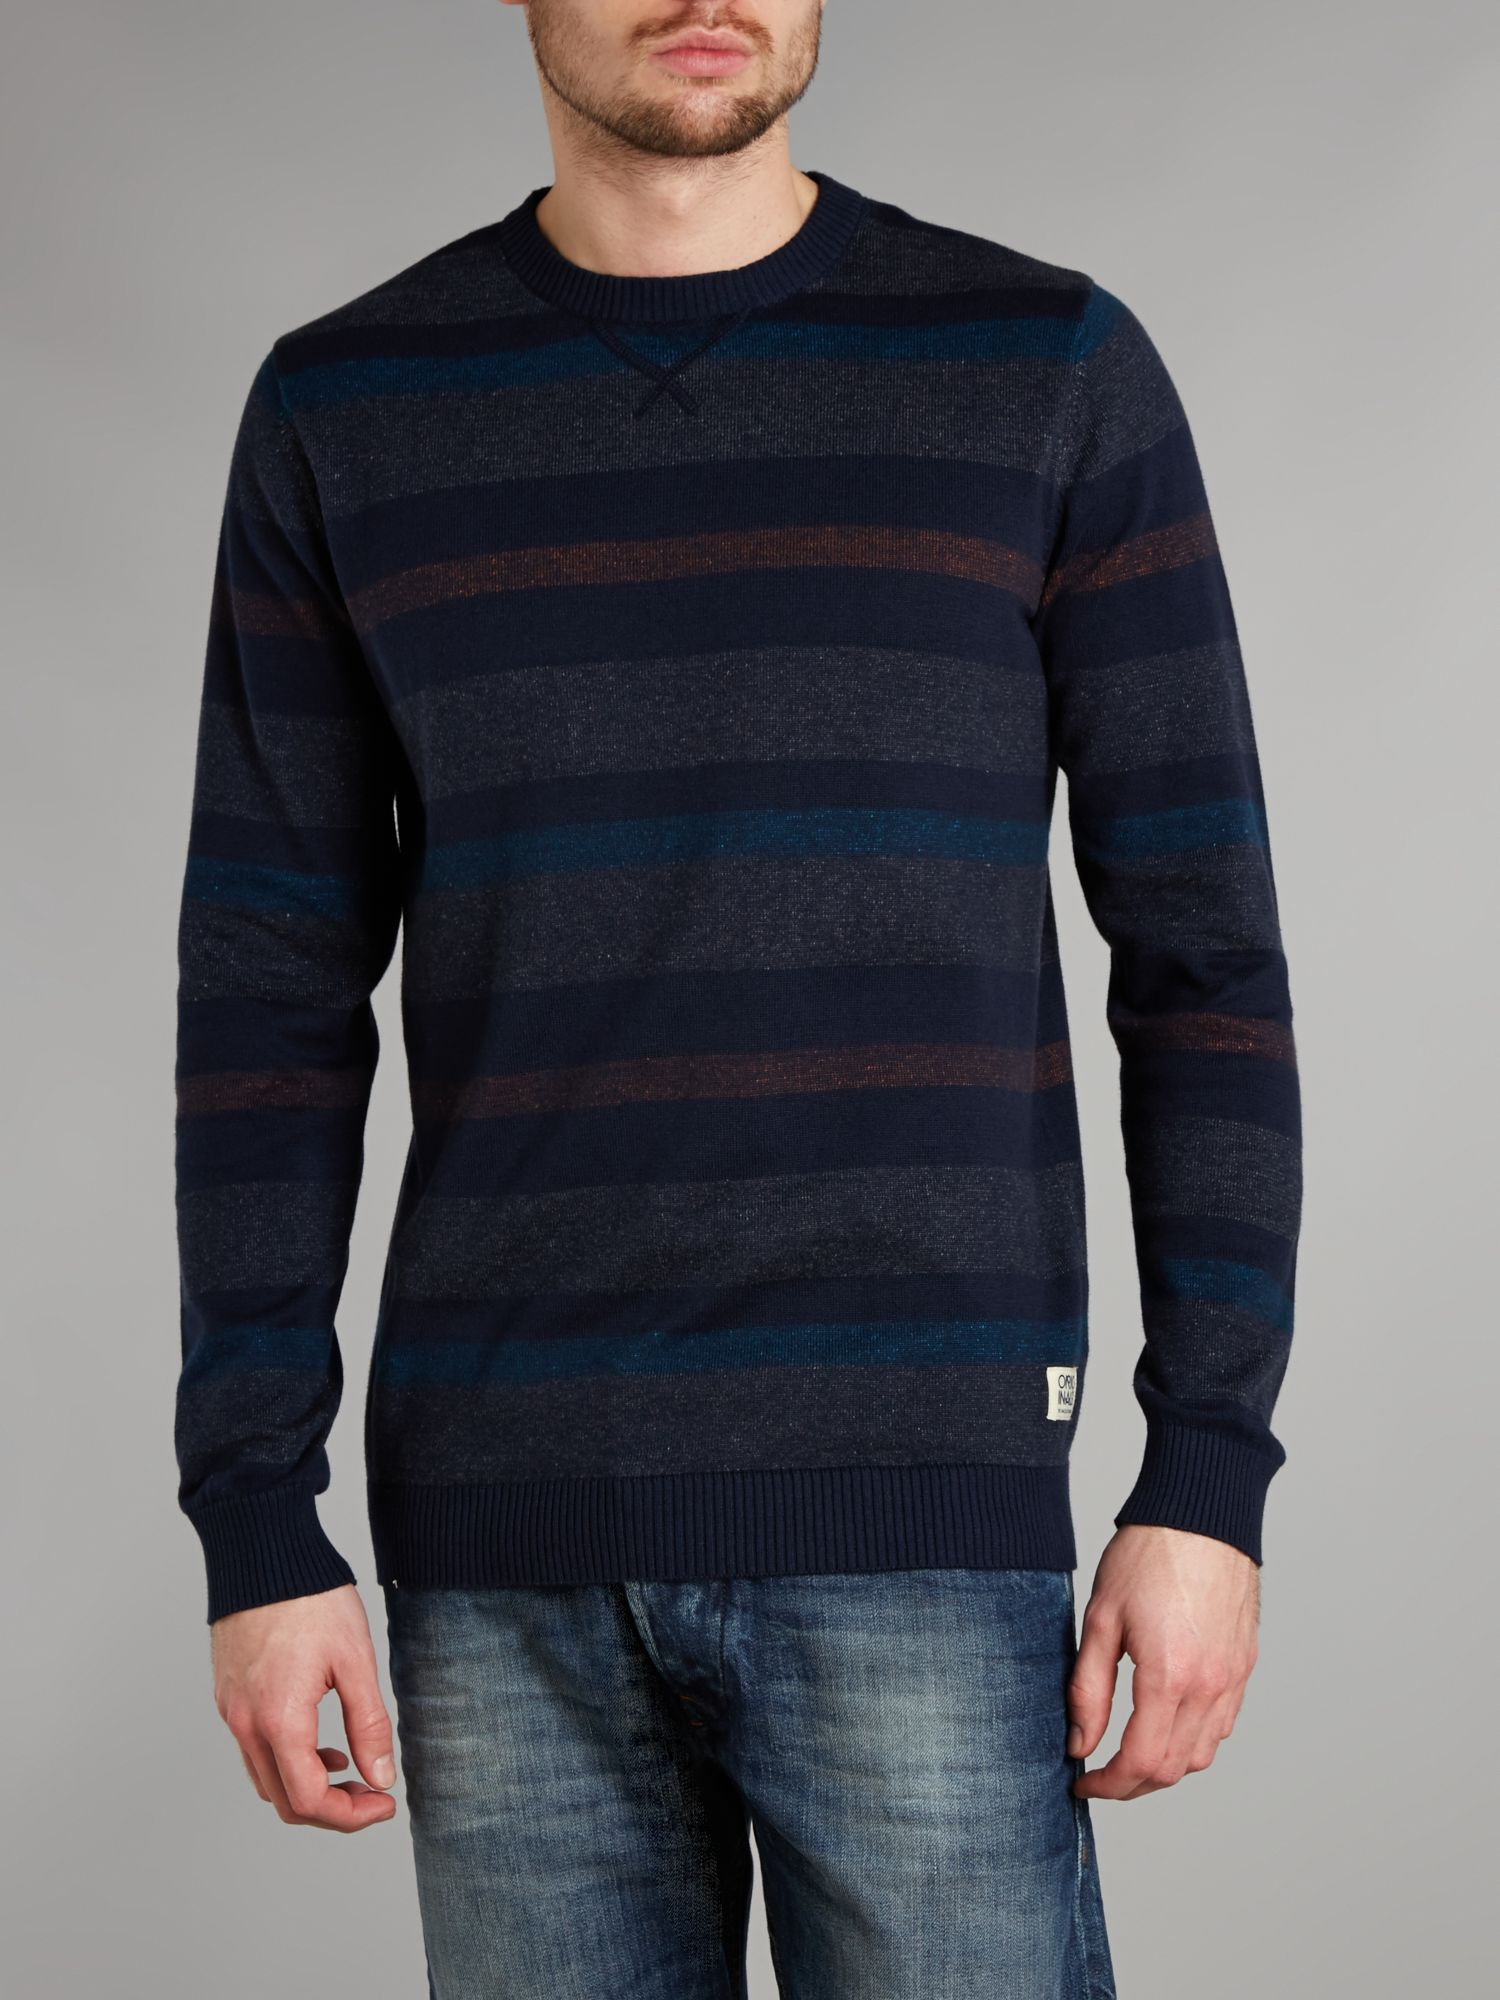 Striped crew knit